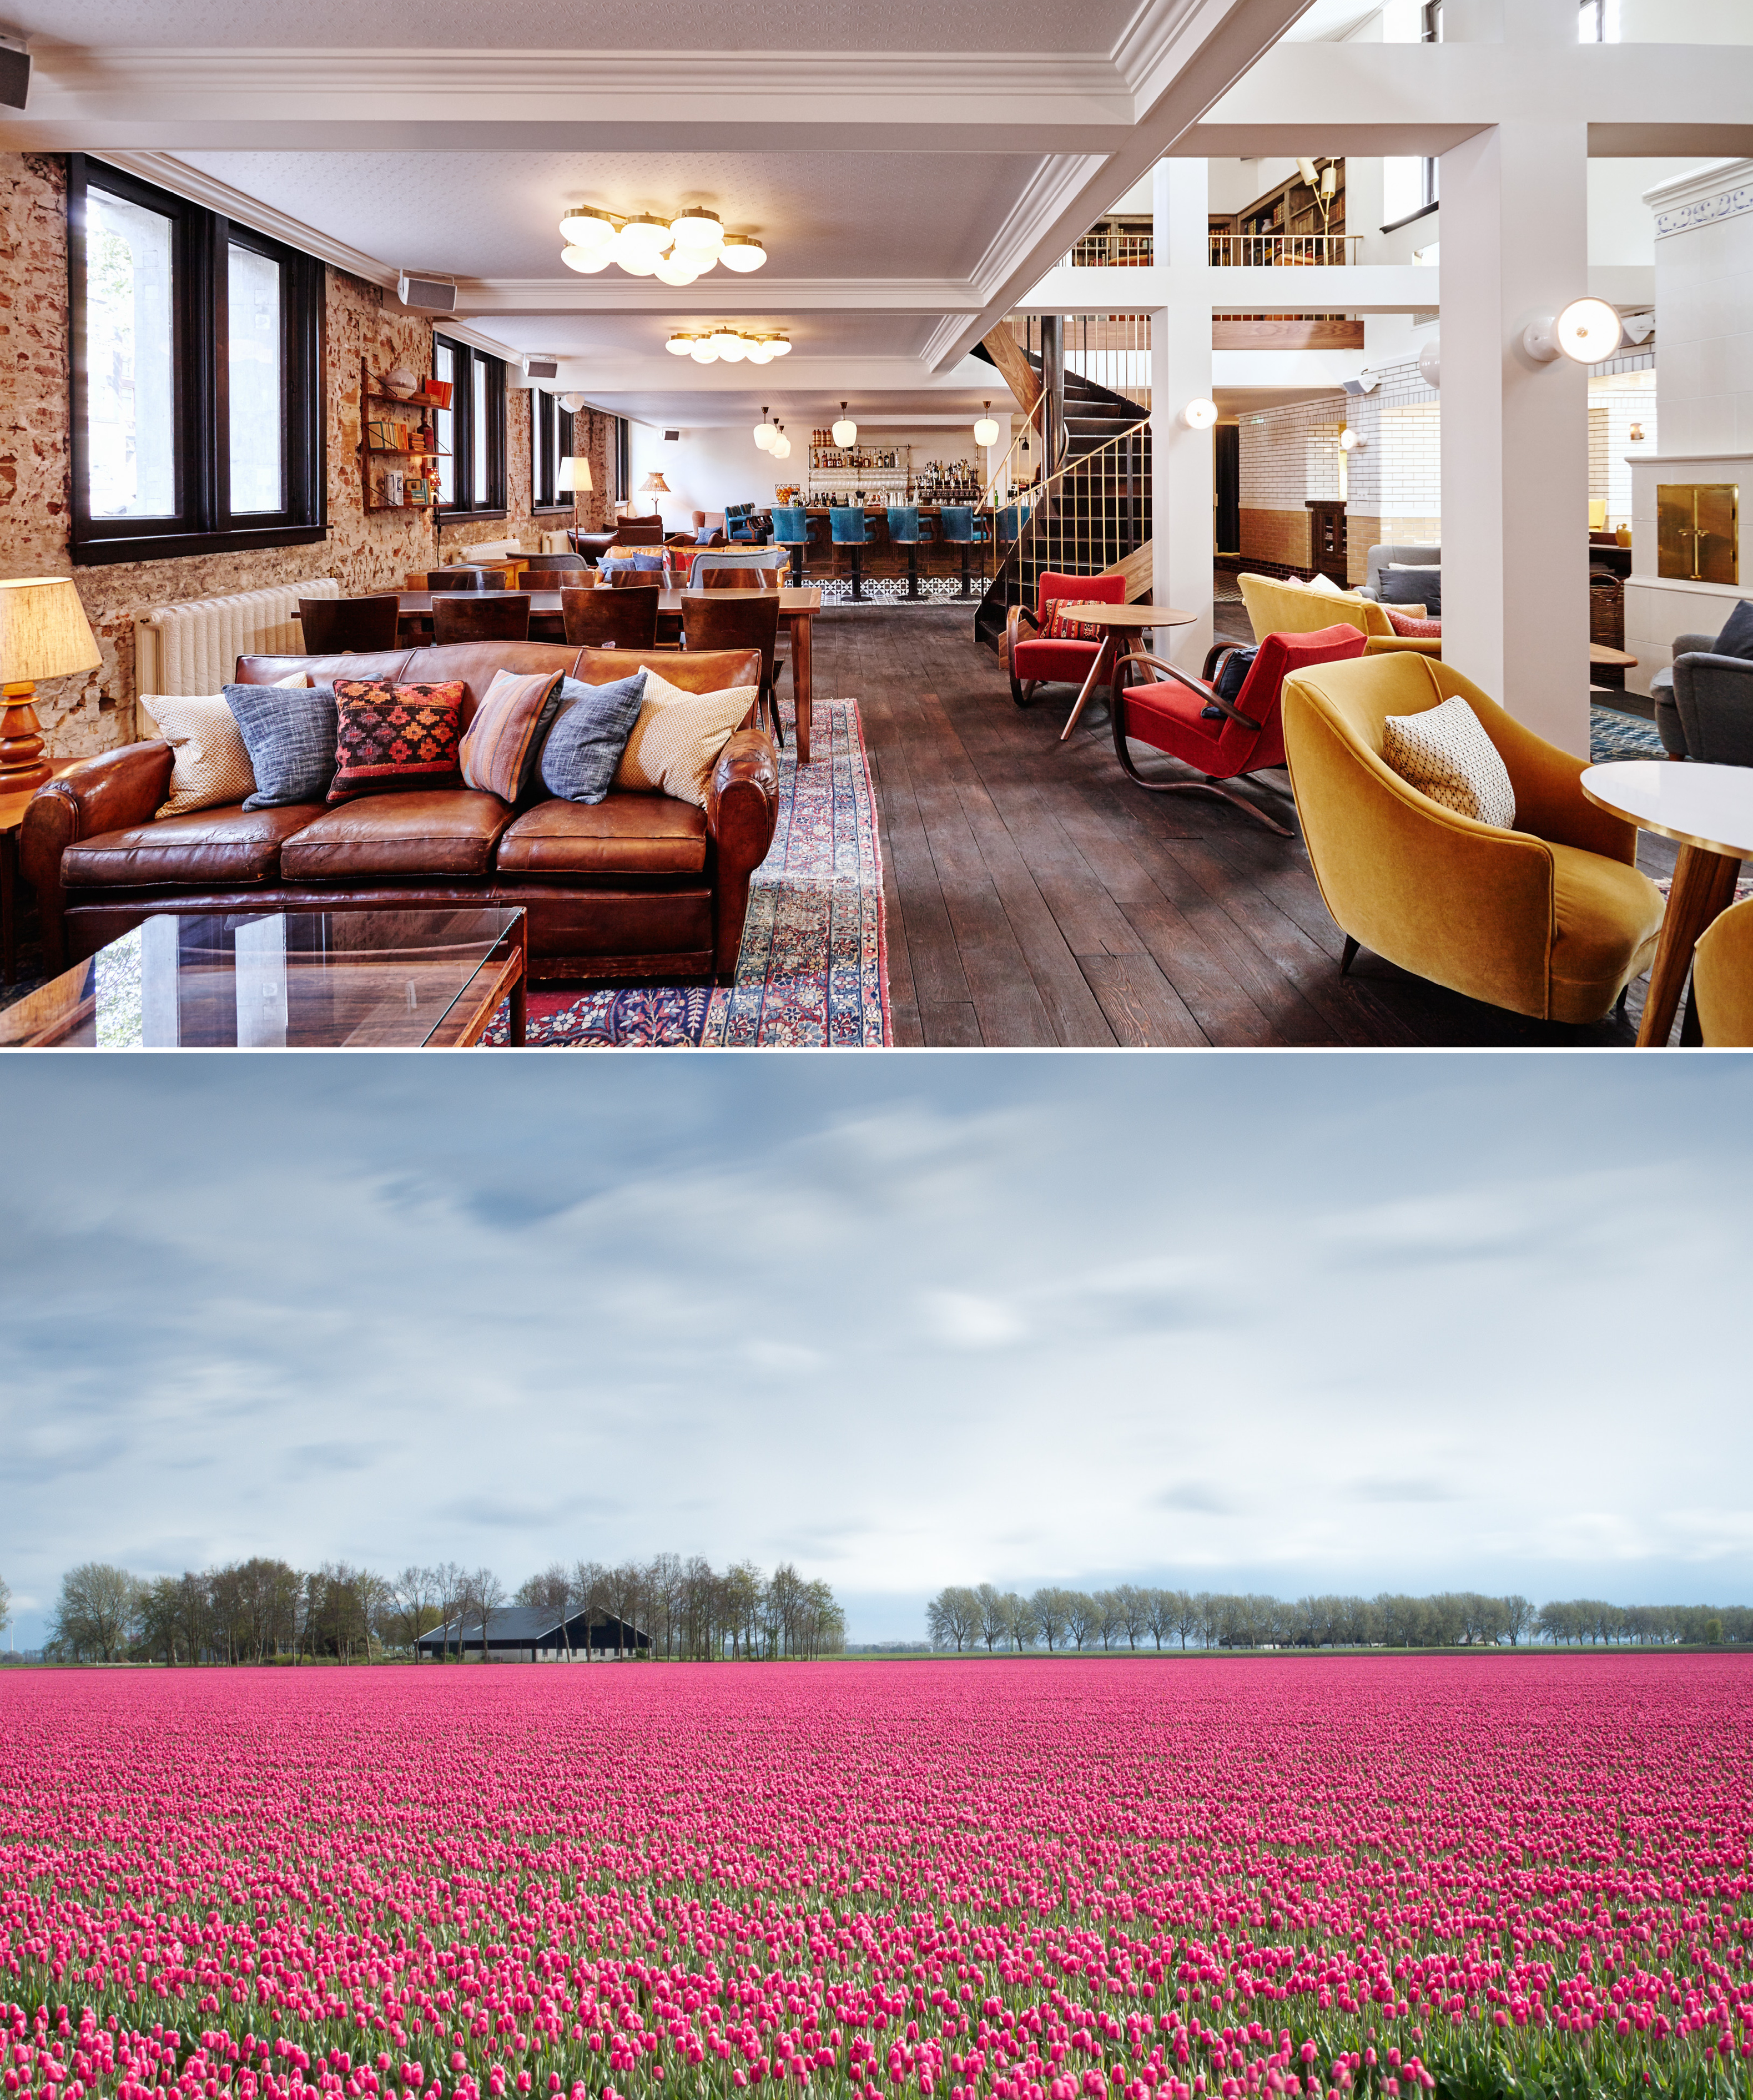 The Best Places to Visit in Spring - Inspired by This